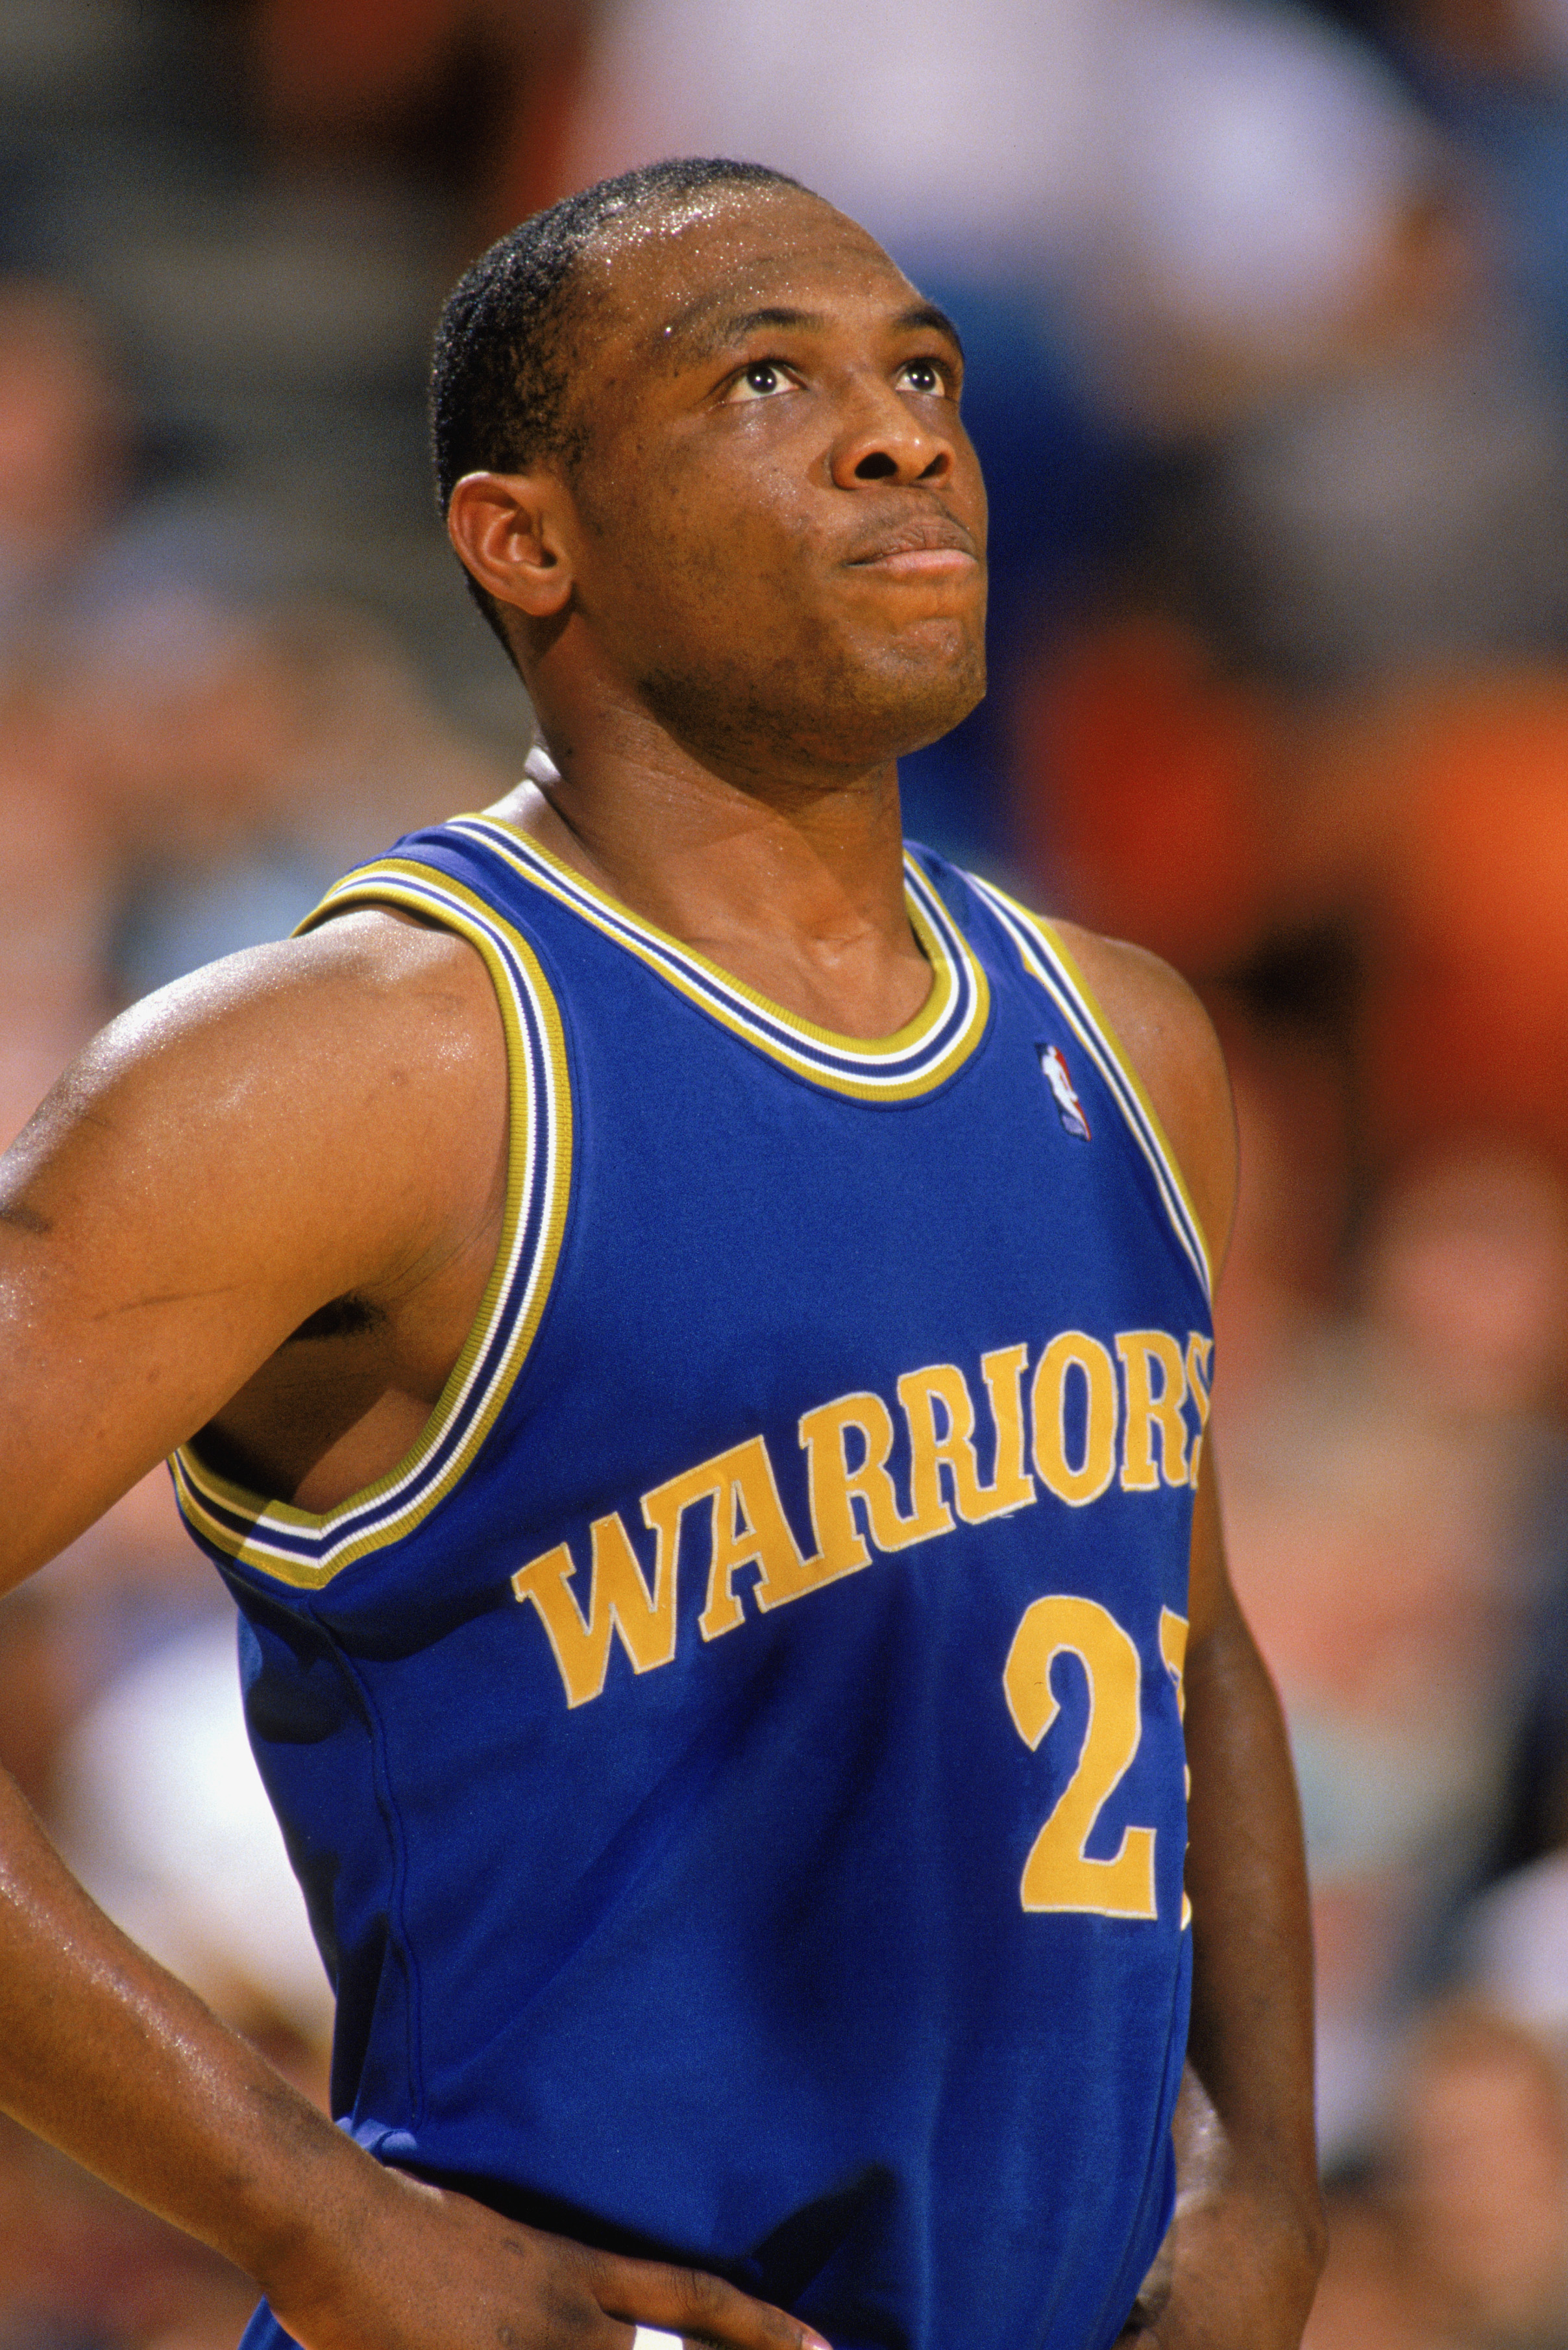 c792f0b6c1c 1989  Mitch Richmond  23 of the Golden State Warriors looks at the  scoreboard during